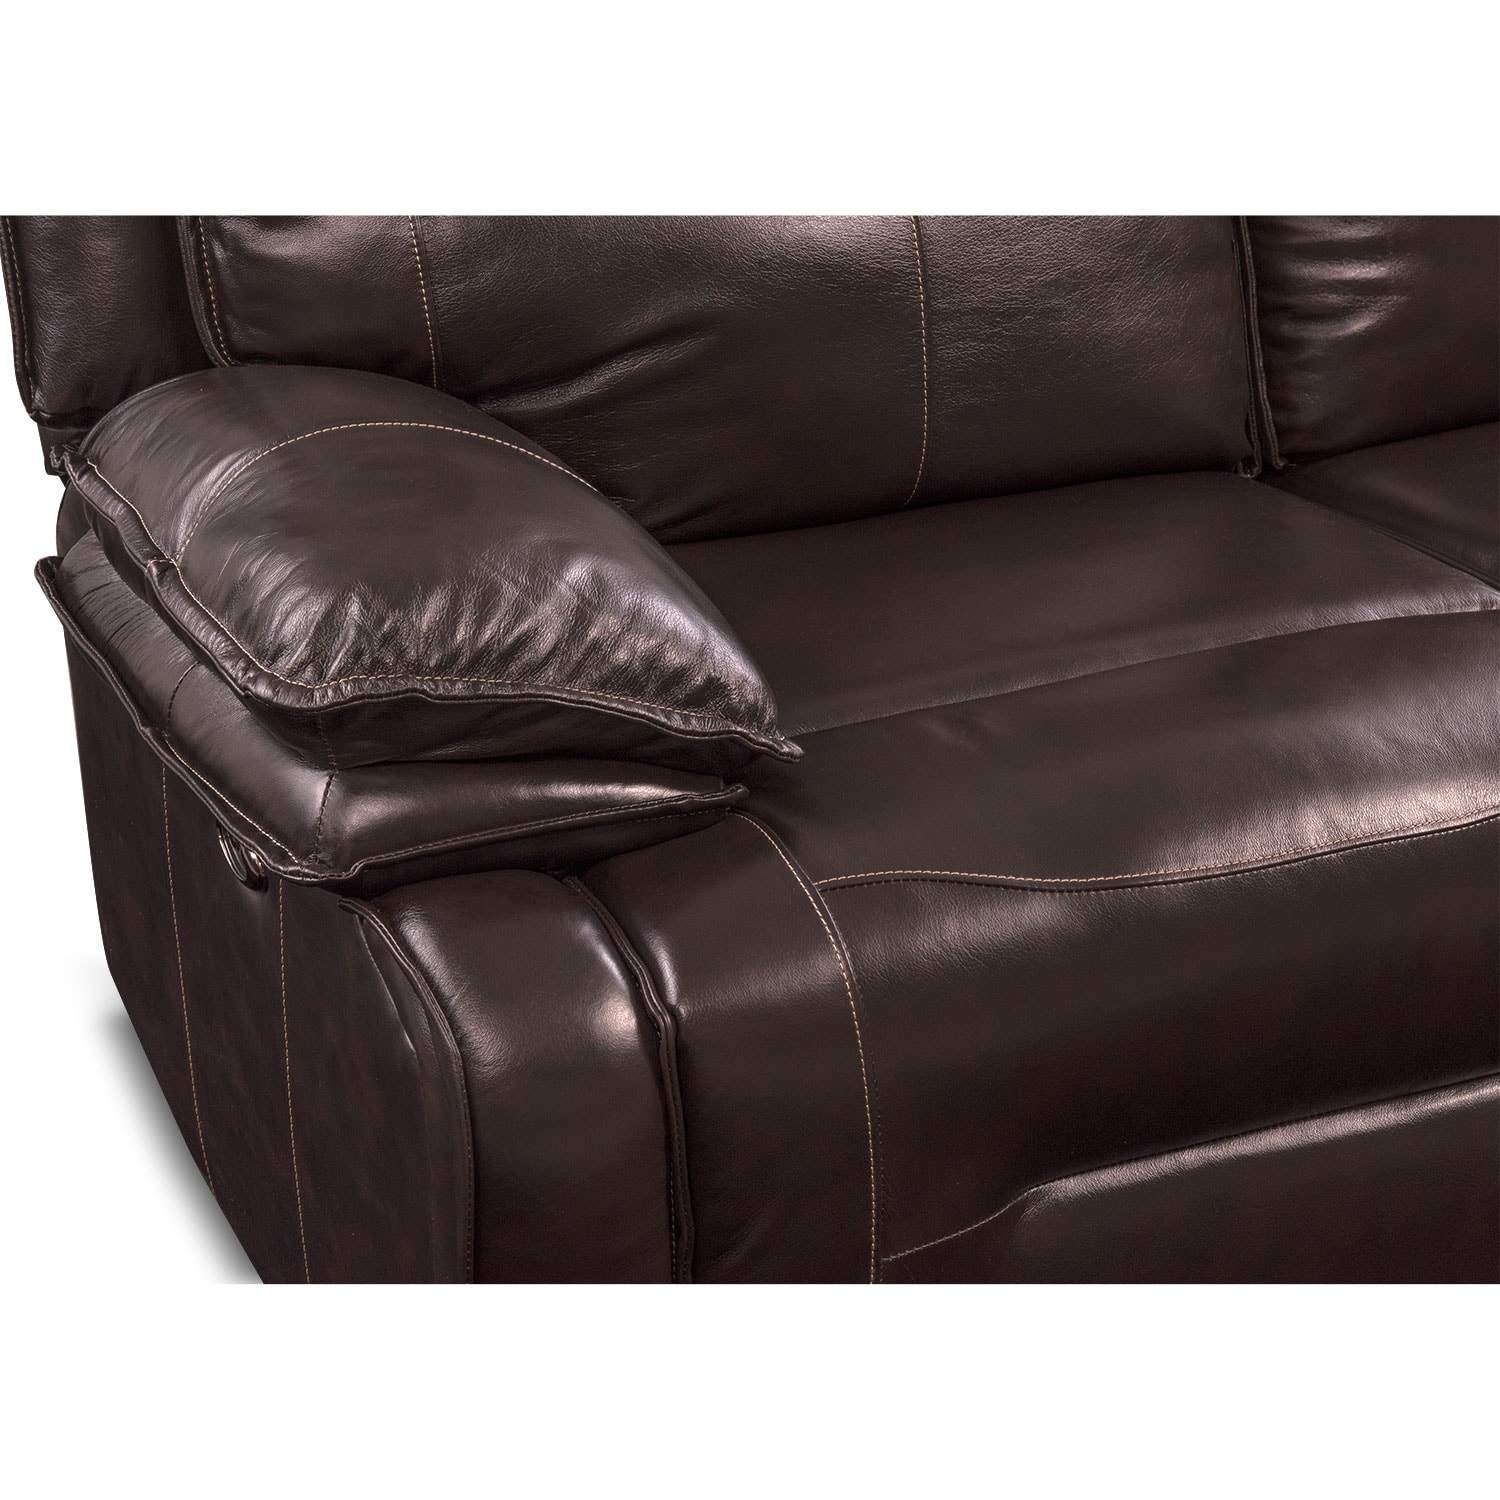 Nikki 6 Piece Power Reclining Sectional with 3 Recliners Brown